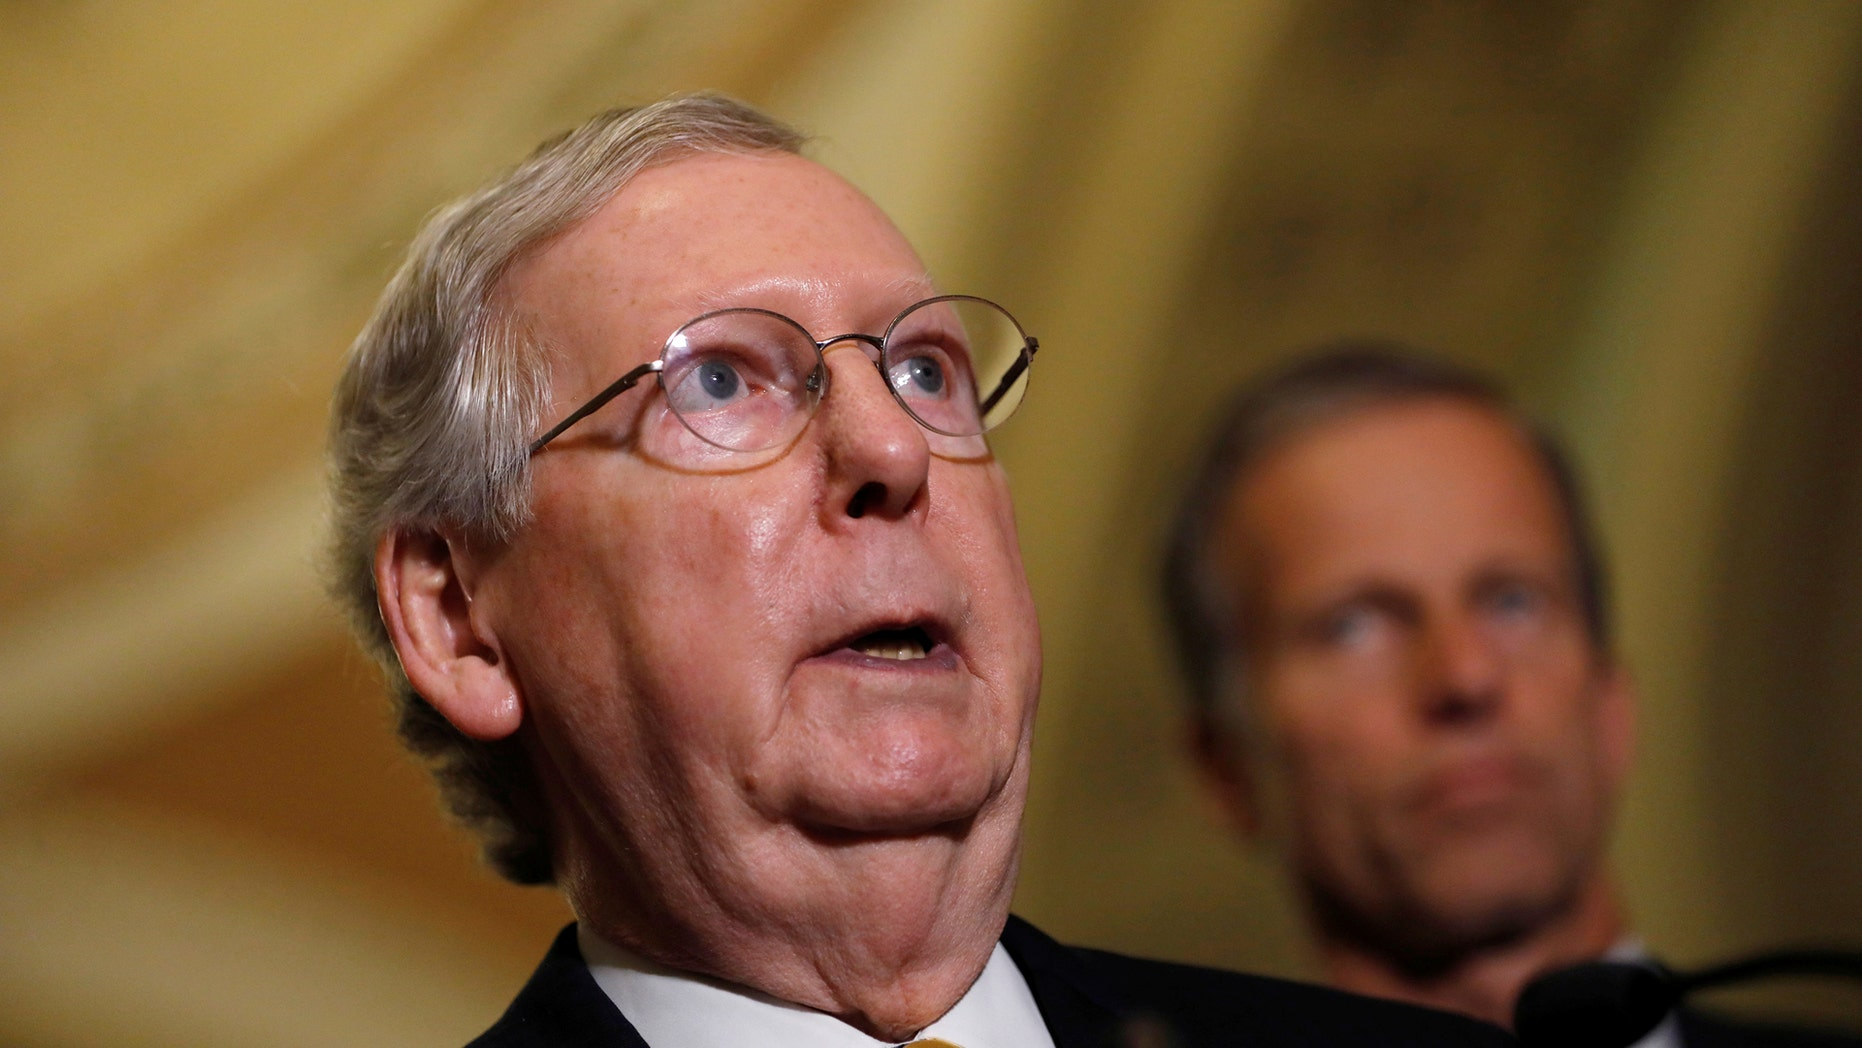 Senate Majority Leader Mitch McConnell speaks to the media about plans to repeal and replace Obamacare on Capitol Hill in Washington, U.S., June 27, 2017. REUTERS/Aaron P. Bernstein - RTS18VLA